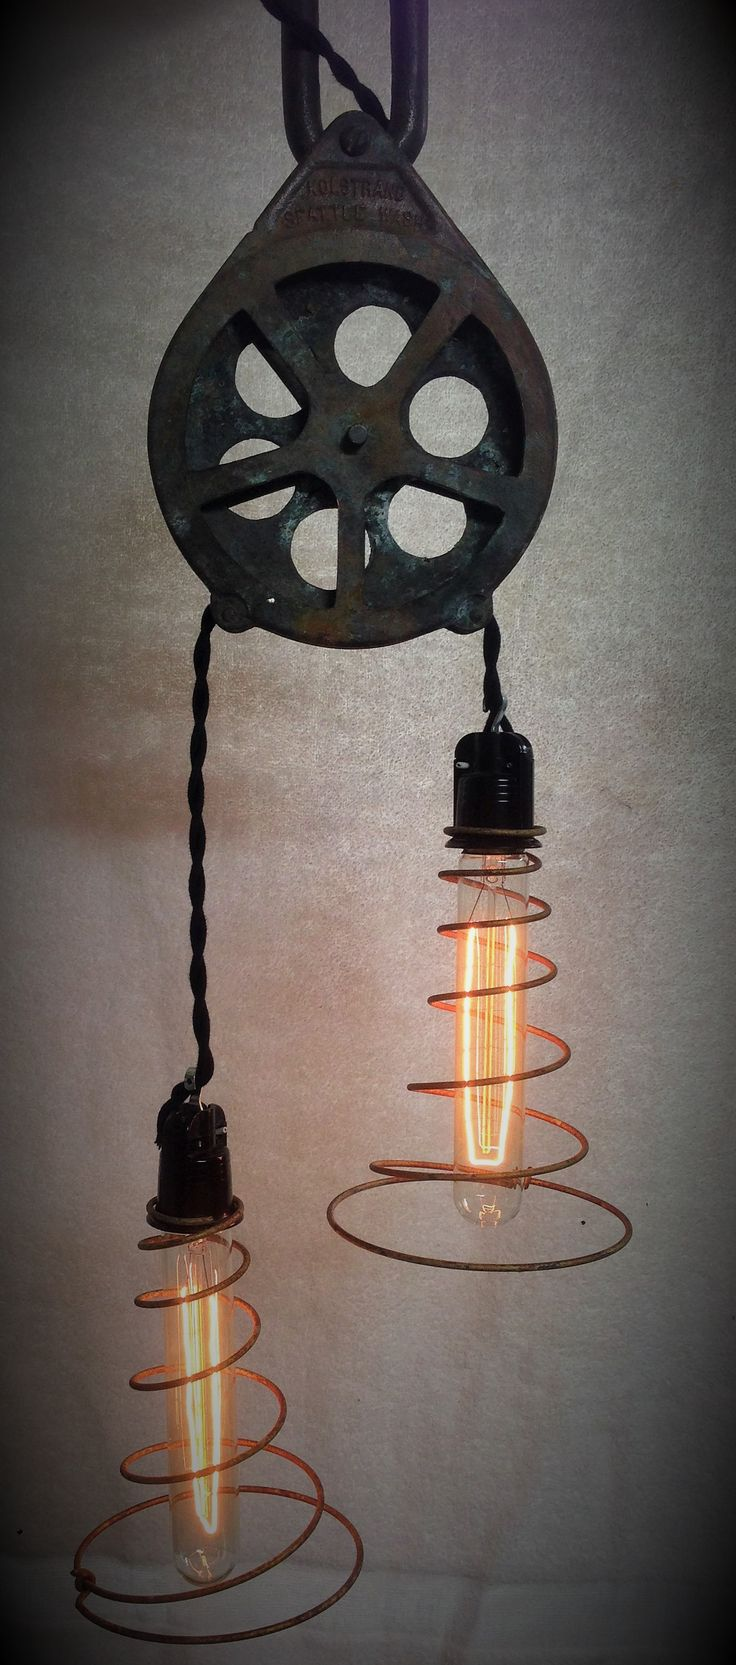 Steam Punk Lamp : Steampunk lamps ways to add a touch of vintage and